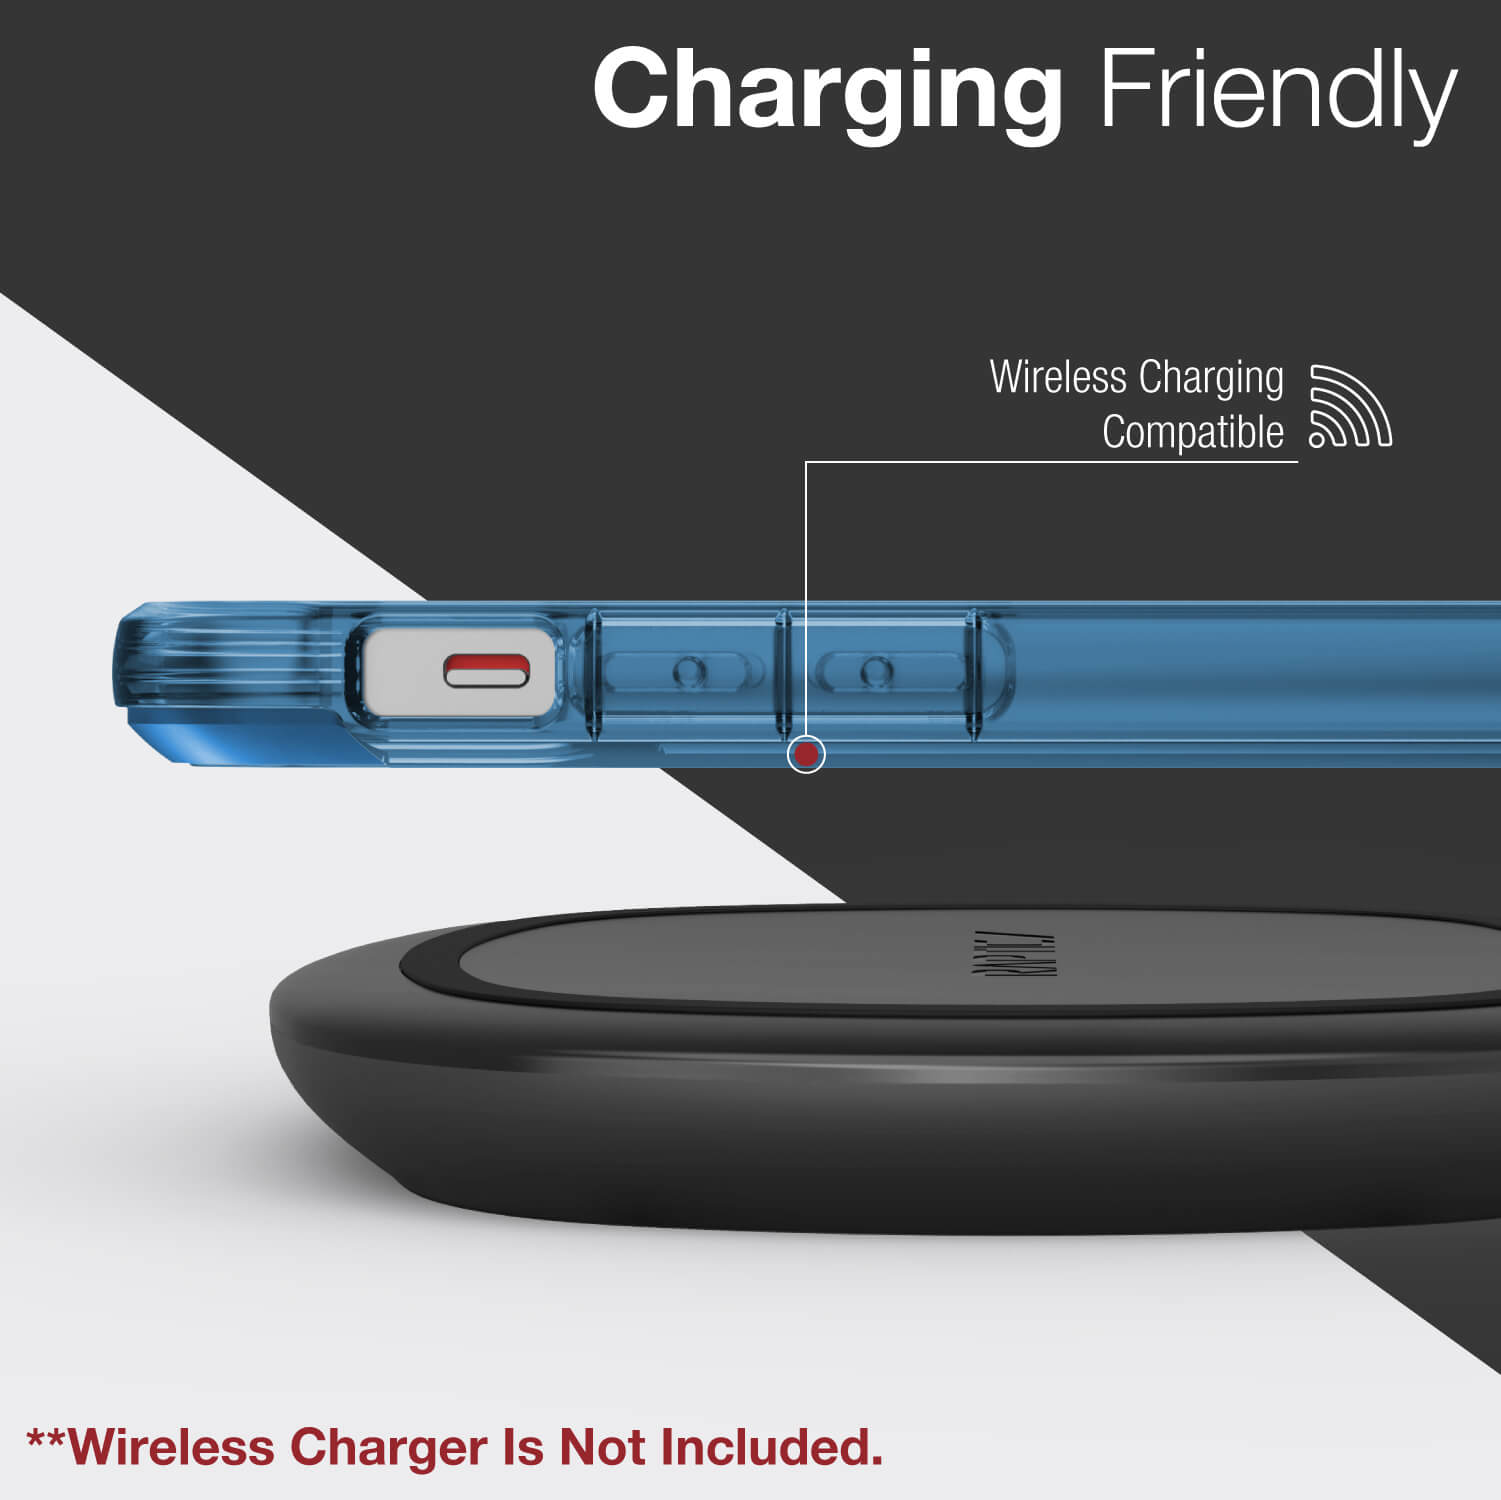 An infographic showing an iPhone 12 Pro wireless charging while encased in a Raptic Air case